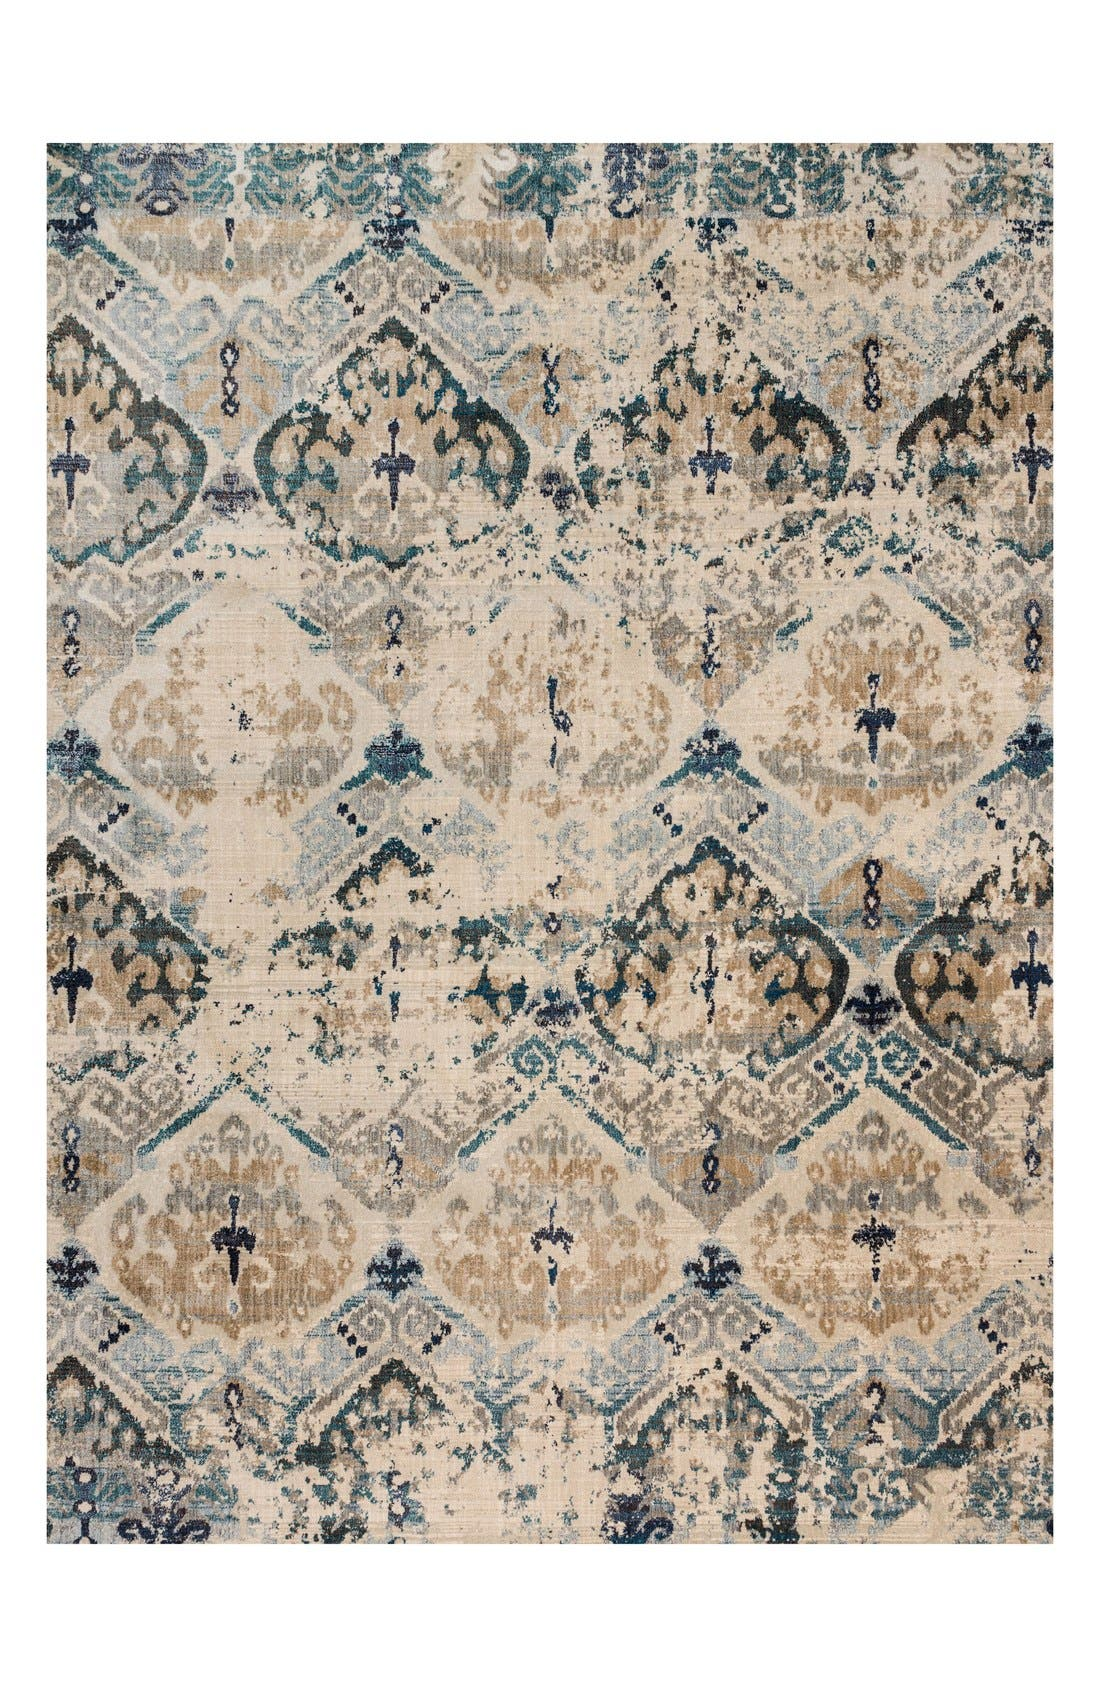 Alternate Image 1 Selected - Loloi x Magnolia Home 'Kivi' Area Rug